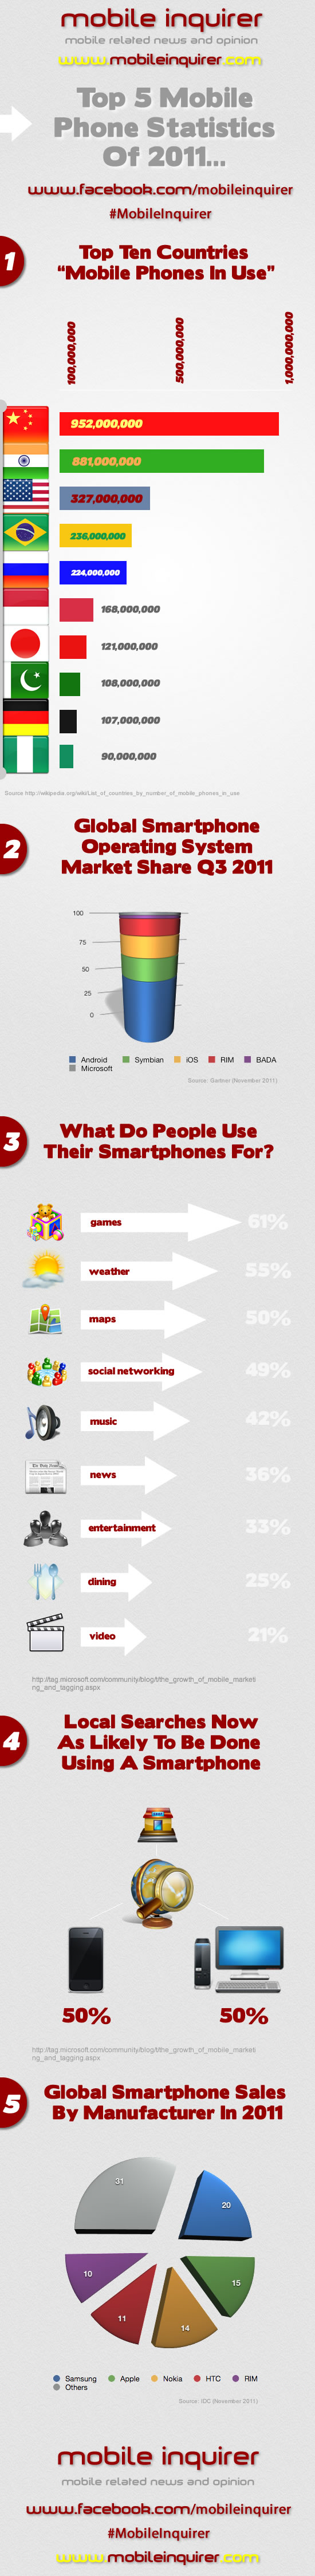 Top 5 Mobile Phone Statistics 2011